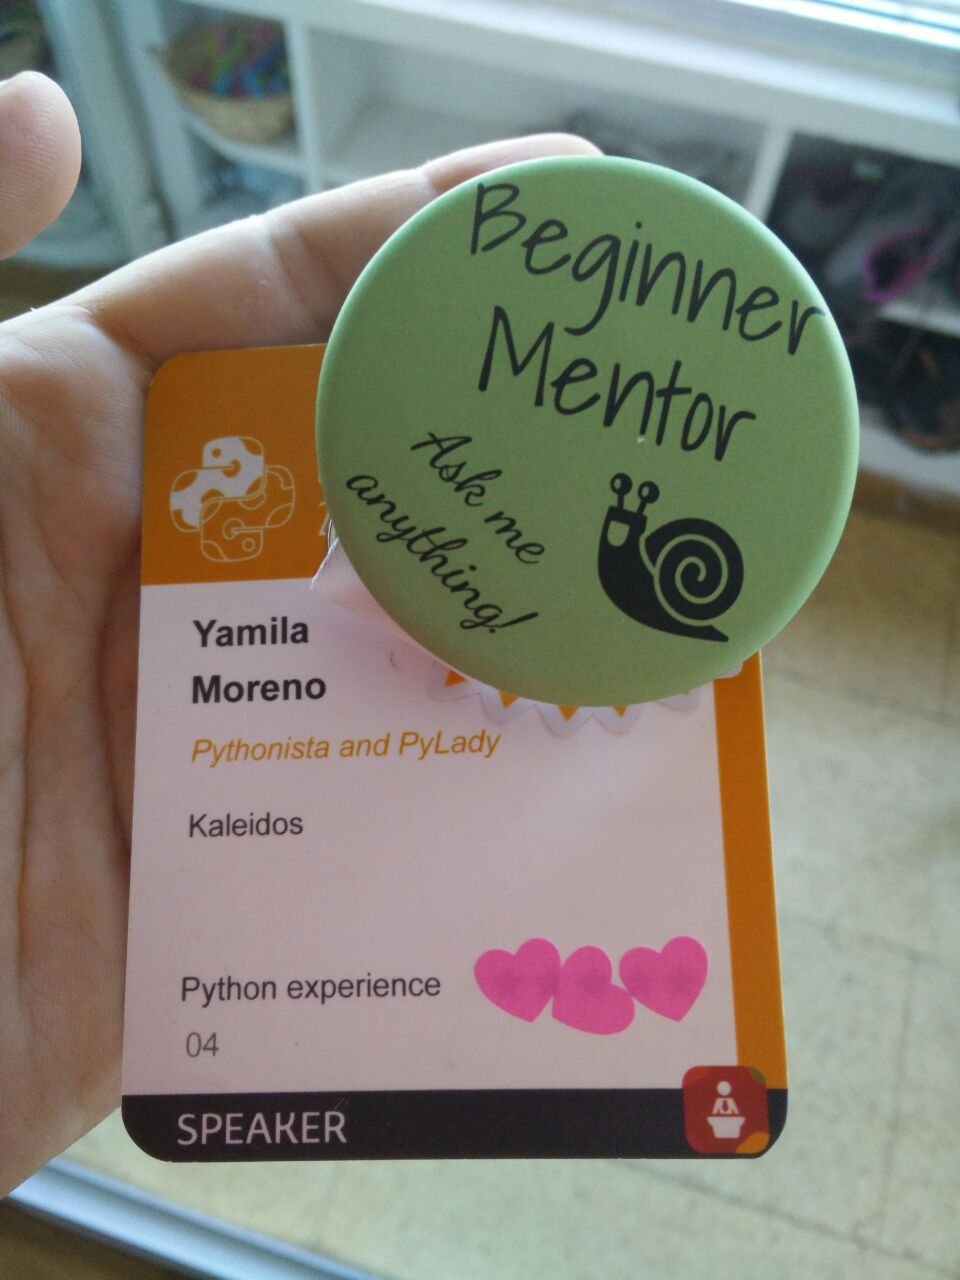 I was given this badge and I proudly showed it during the conference :D